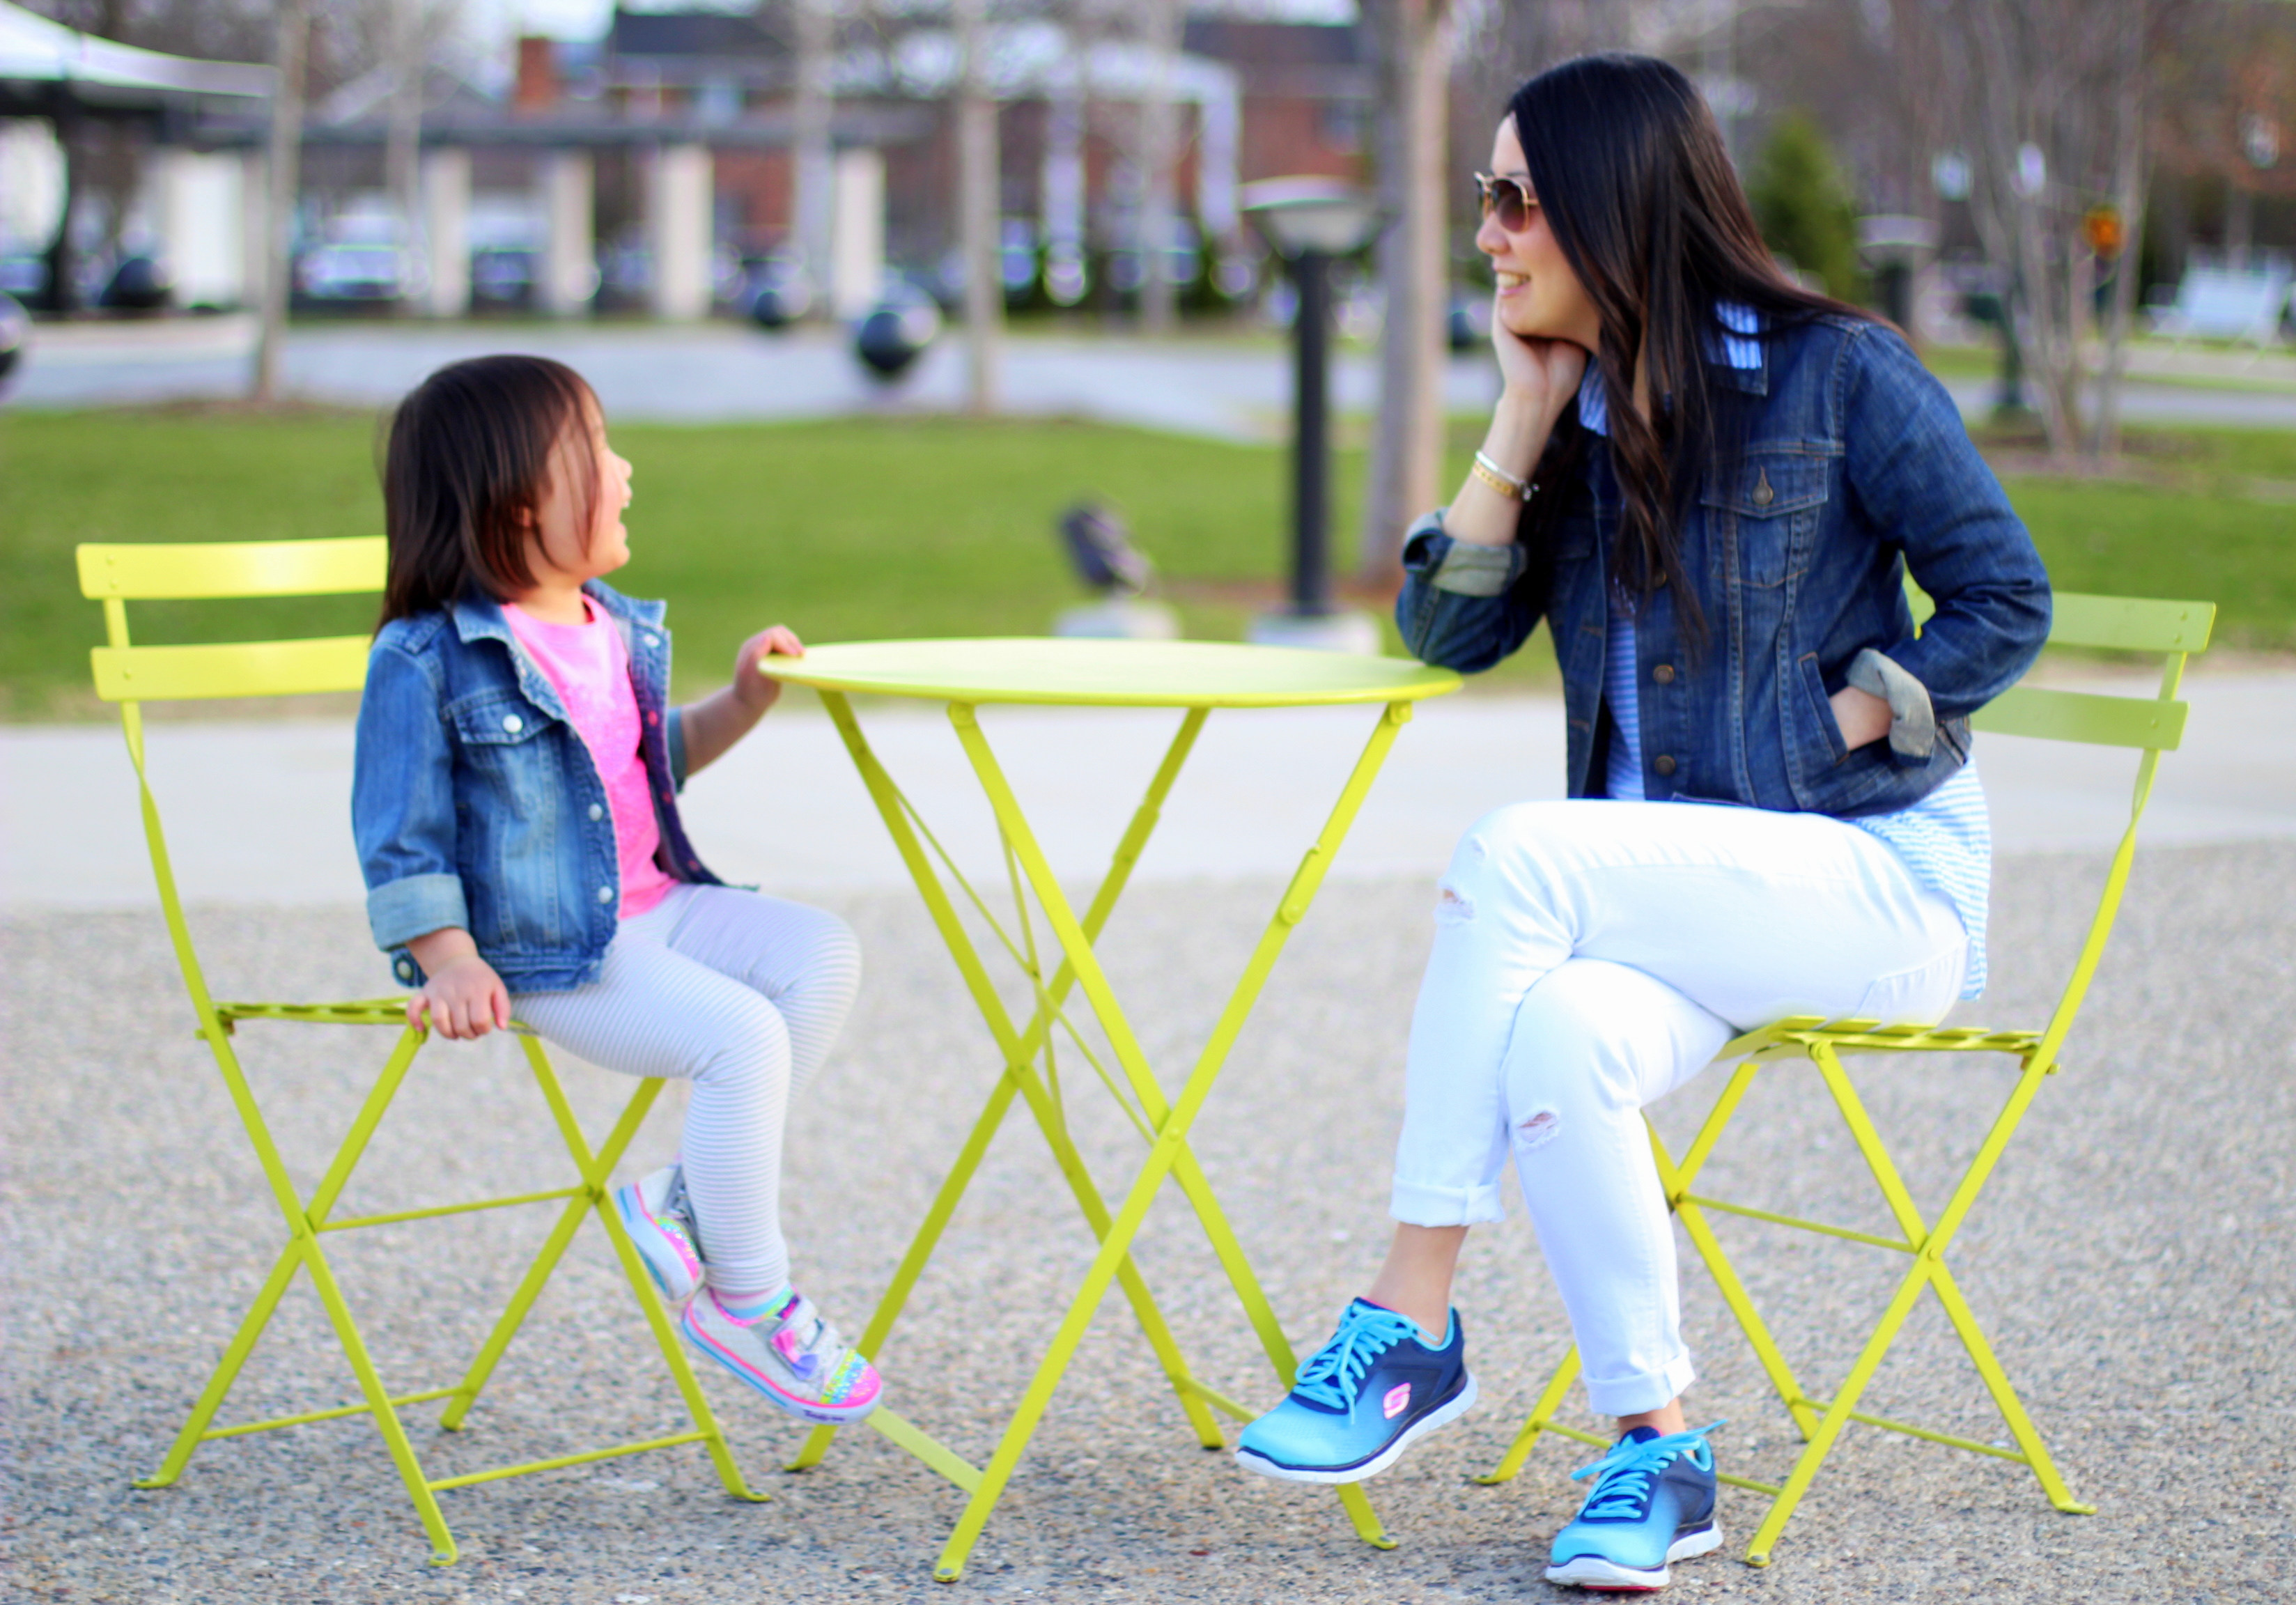 Me + Mini Me + New Kicks = Whole Lot of Fun